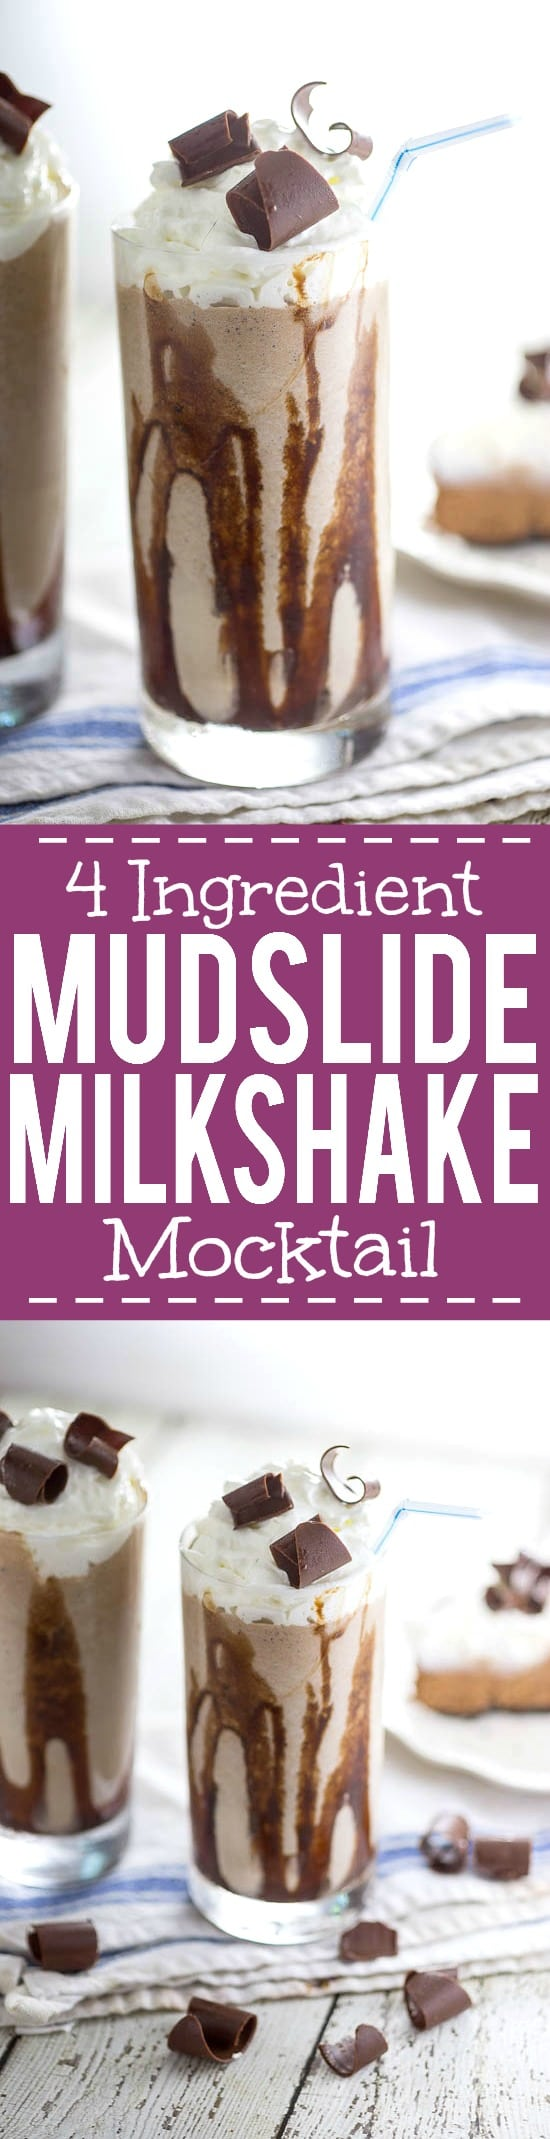 Mudslide Shake Recipe -Calling all chocolate lovers! Everyone who loves chocolate will adore this quick and easy Mudslide Shake recipe! Make it in just 10 minutes with 4 ingredients! Yum!